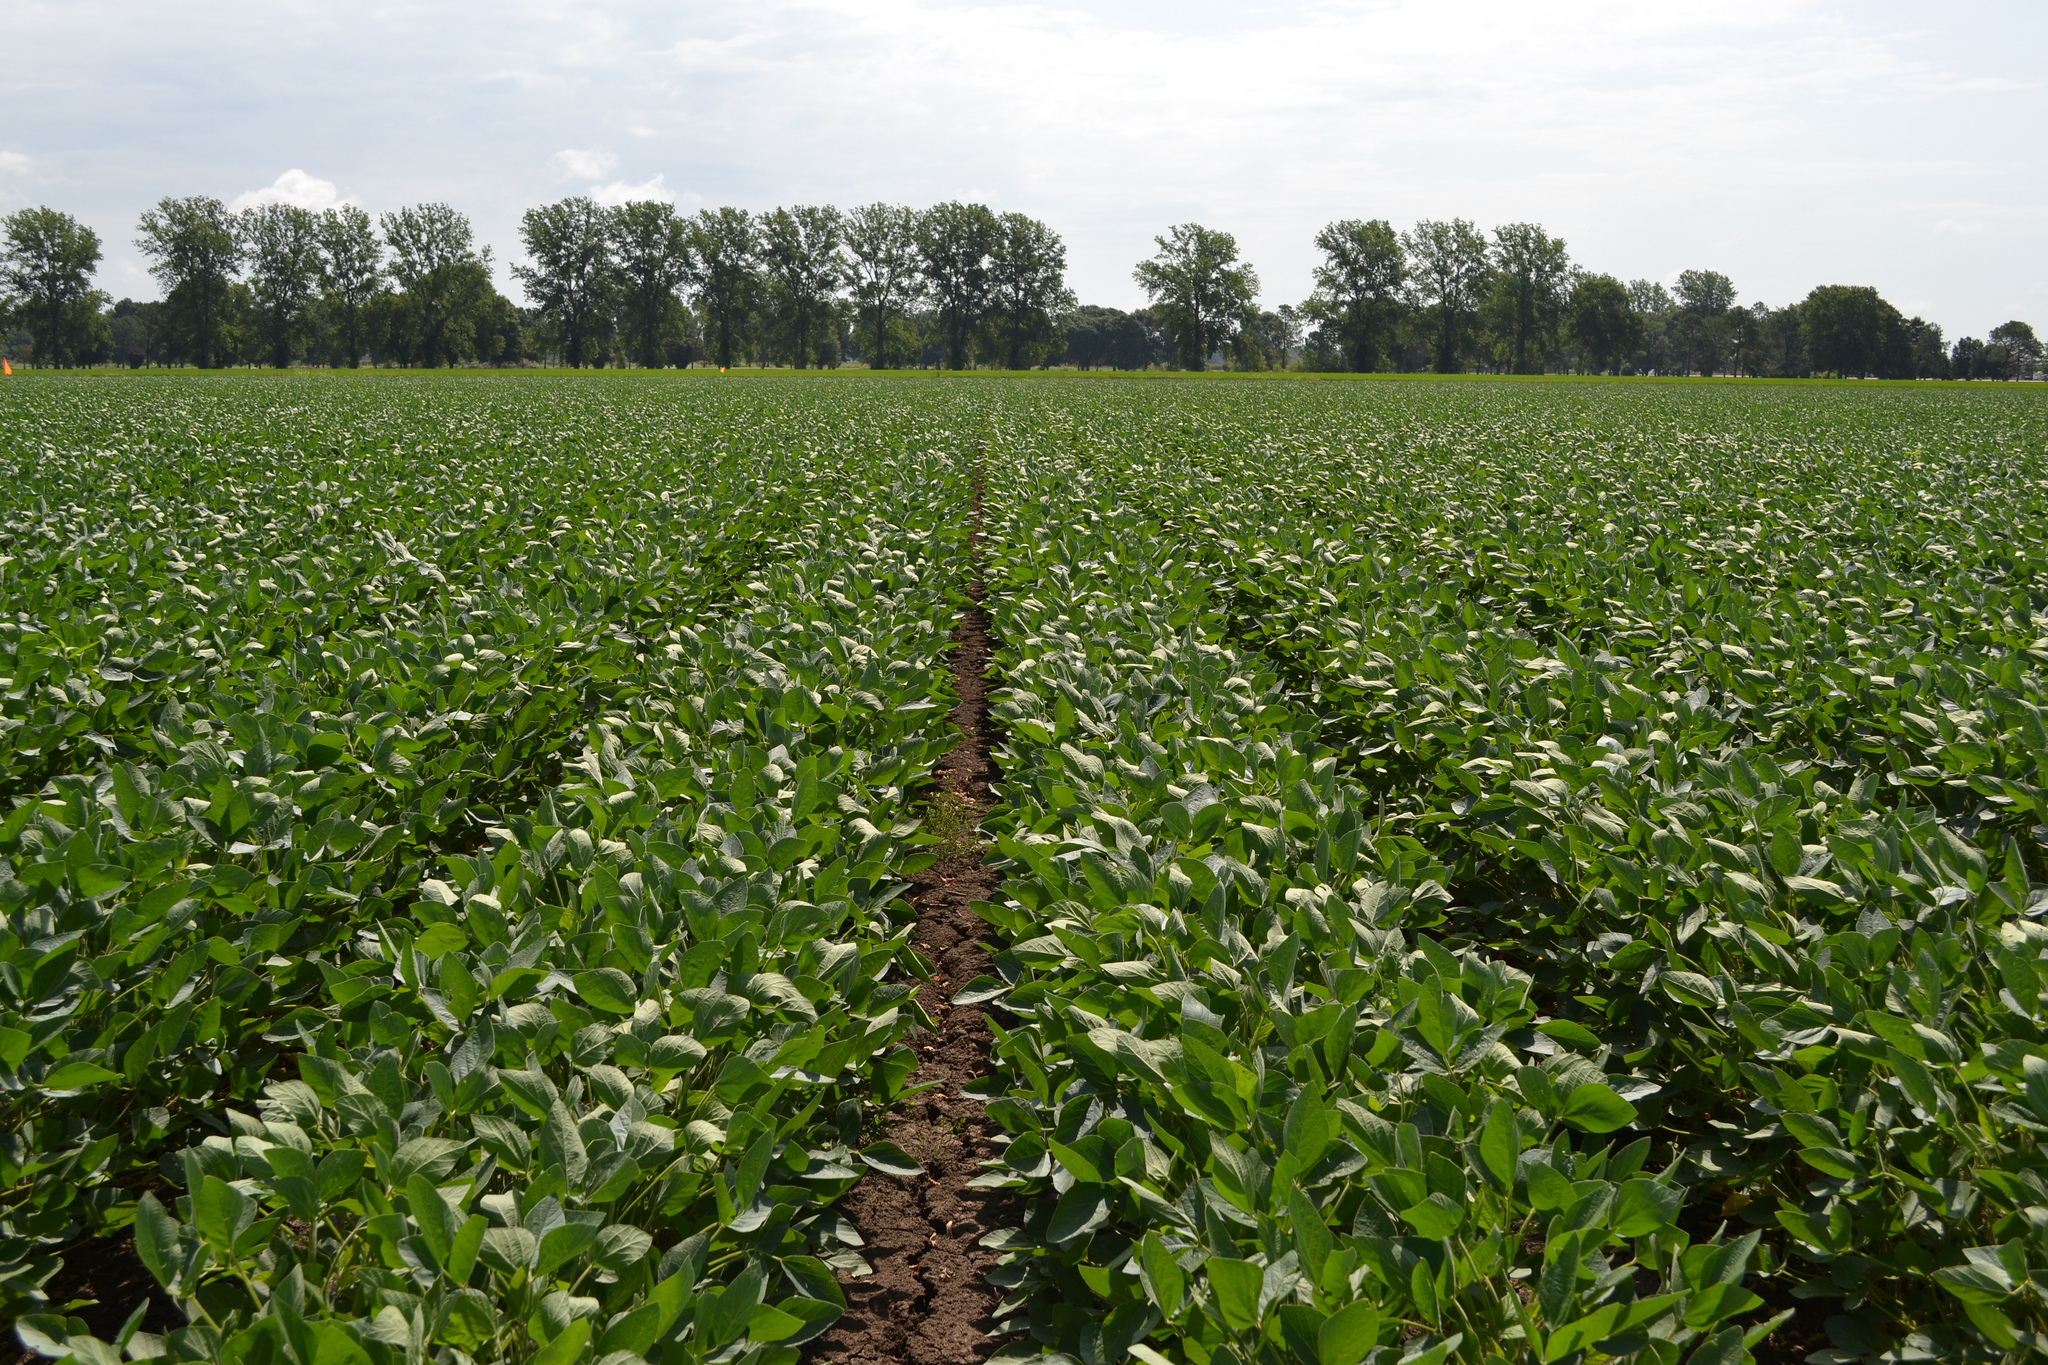 BASF to acquire significant seed, herbicide assets of Bayer   Feedstuffs